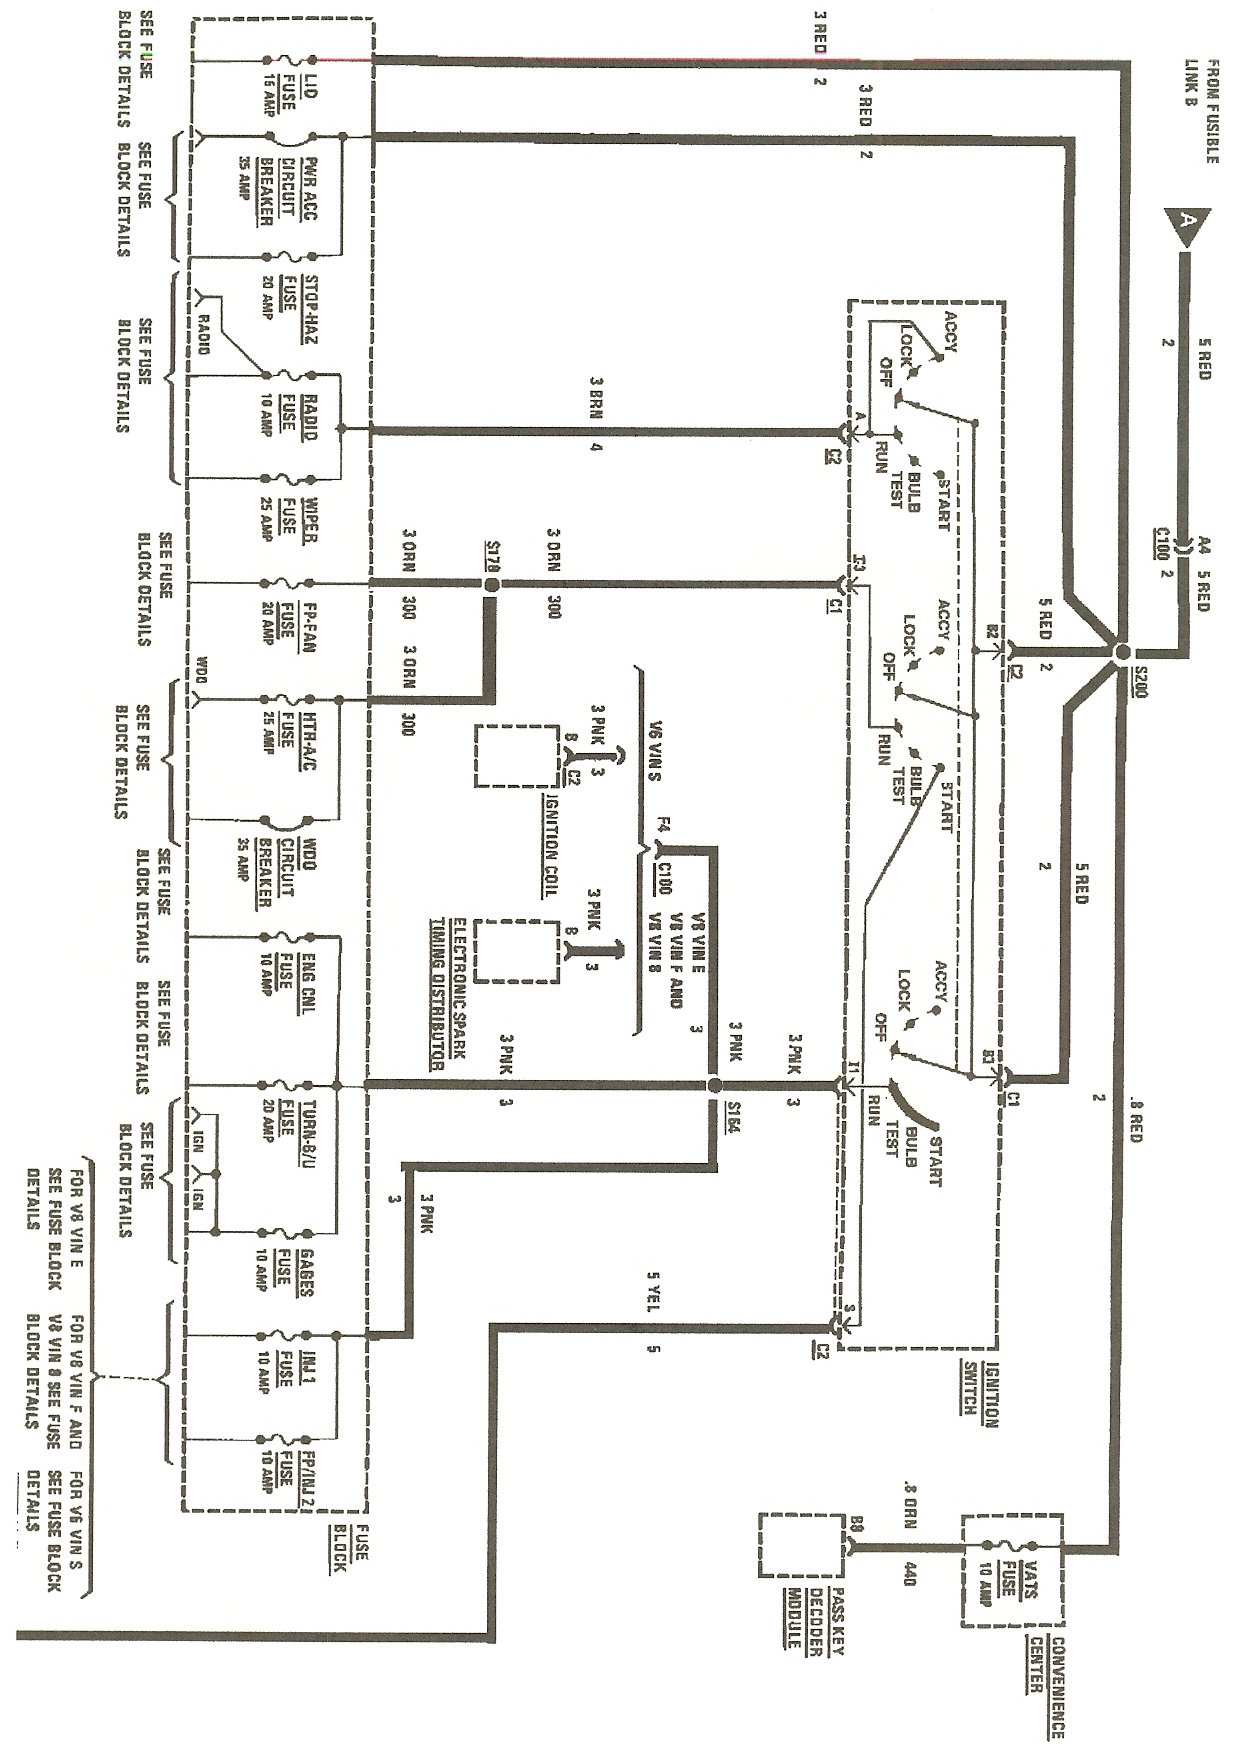 chevy steering column wiring diagram diagram 88 camaro a wiring diagram steering column swap ignition switch